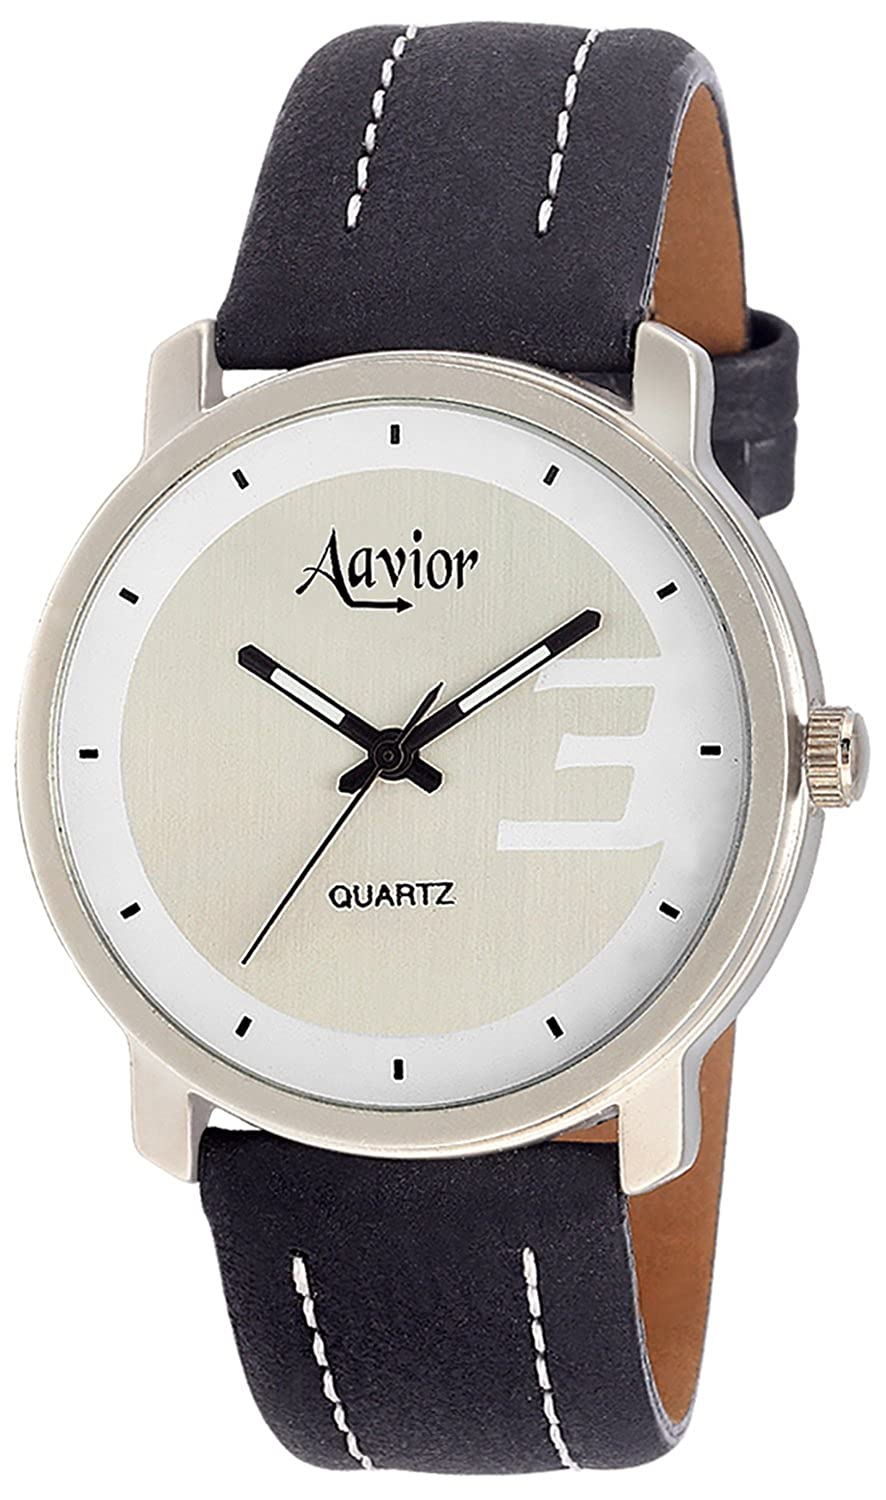 Aavior AA.008  Analog Watch For Boys